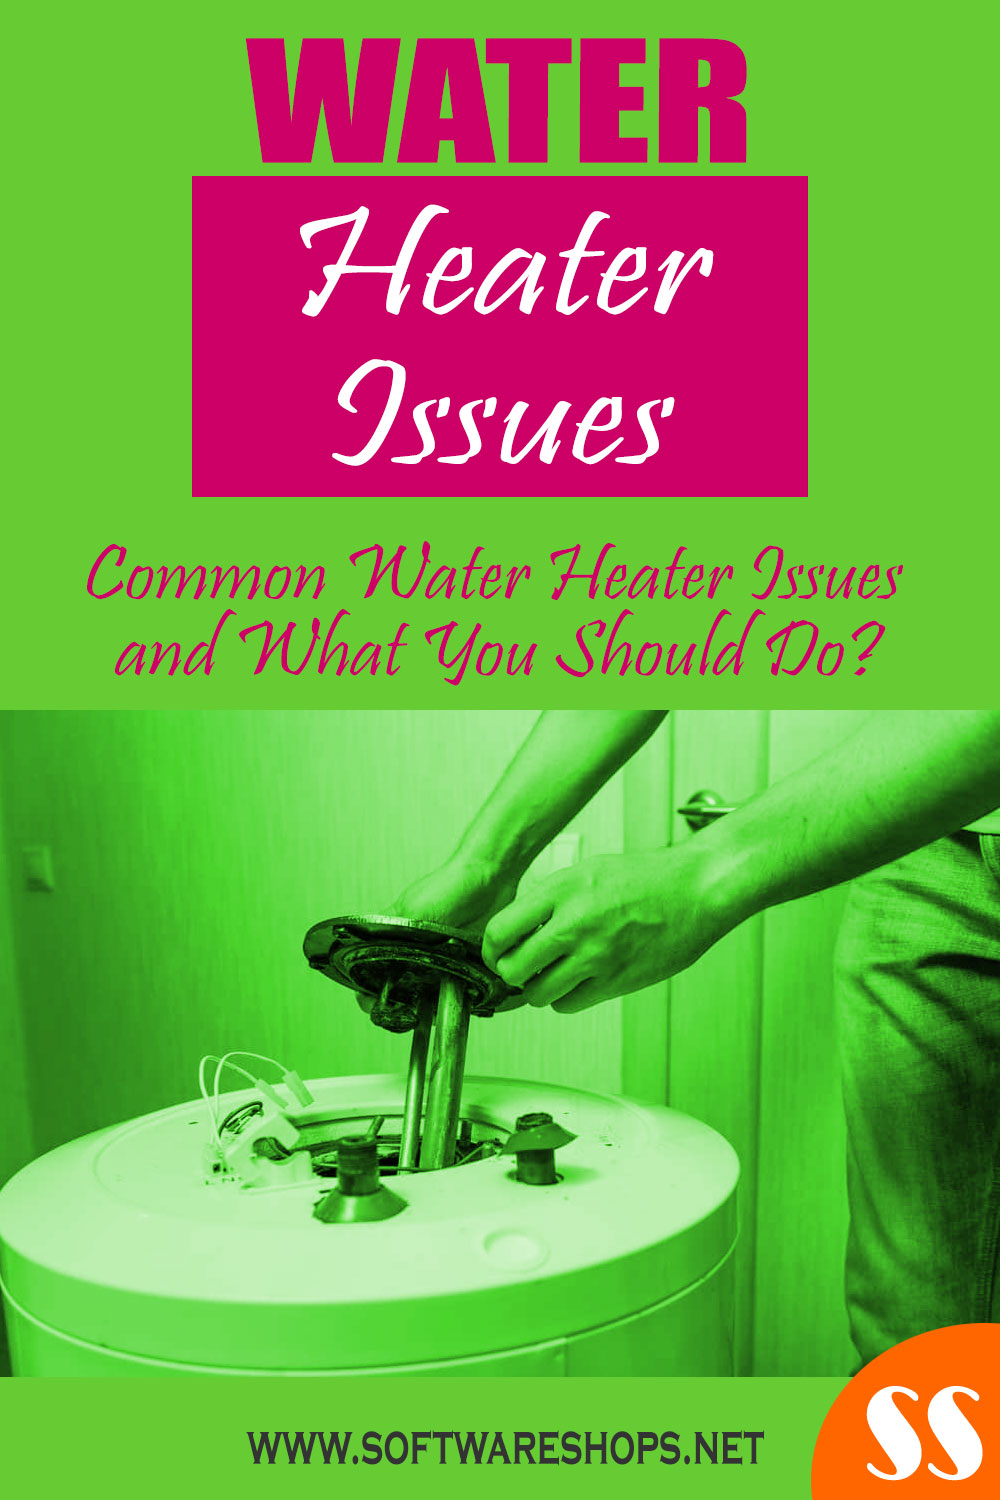 Common Water Heater Issues and What You Should Do?